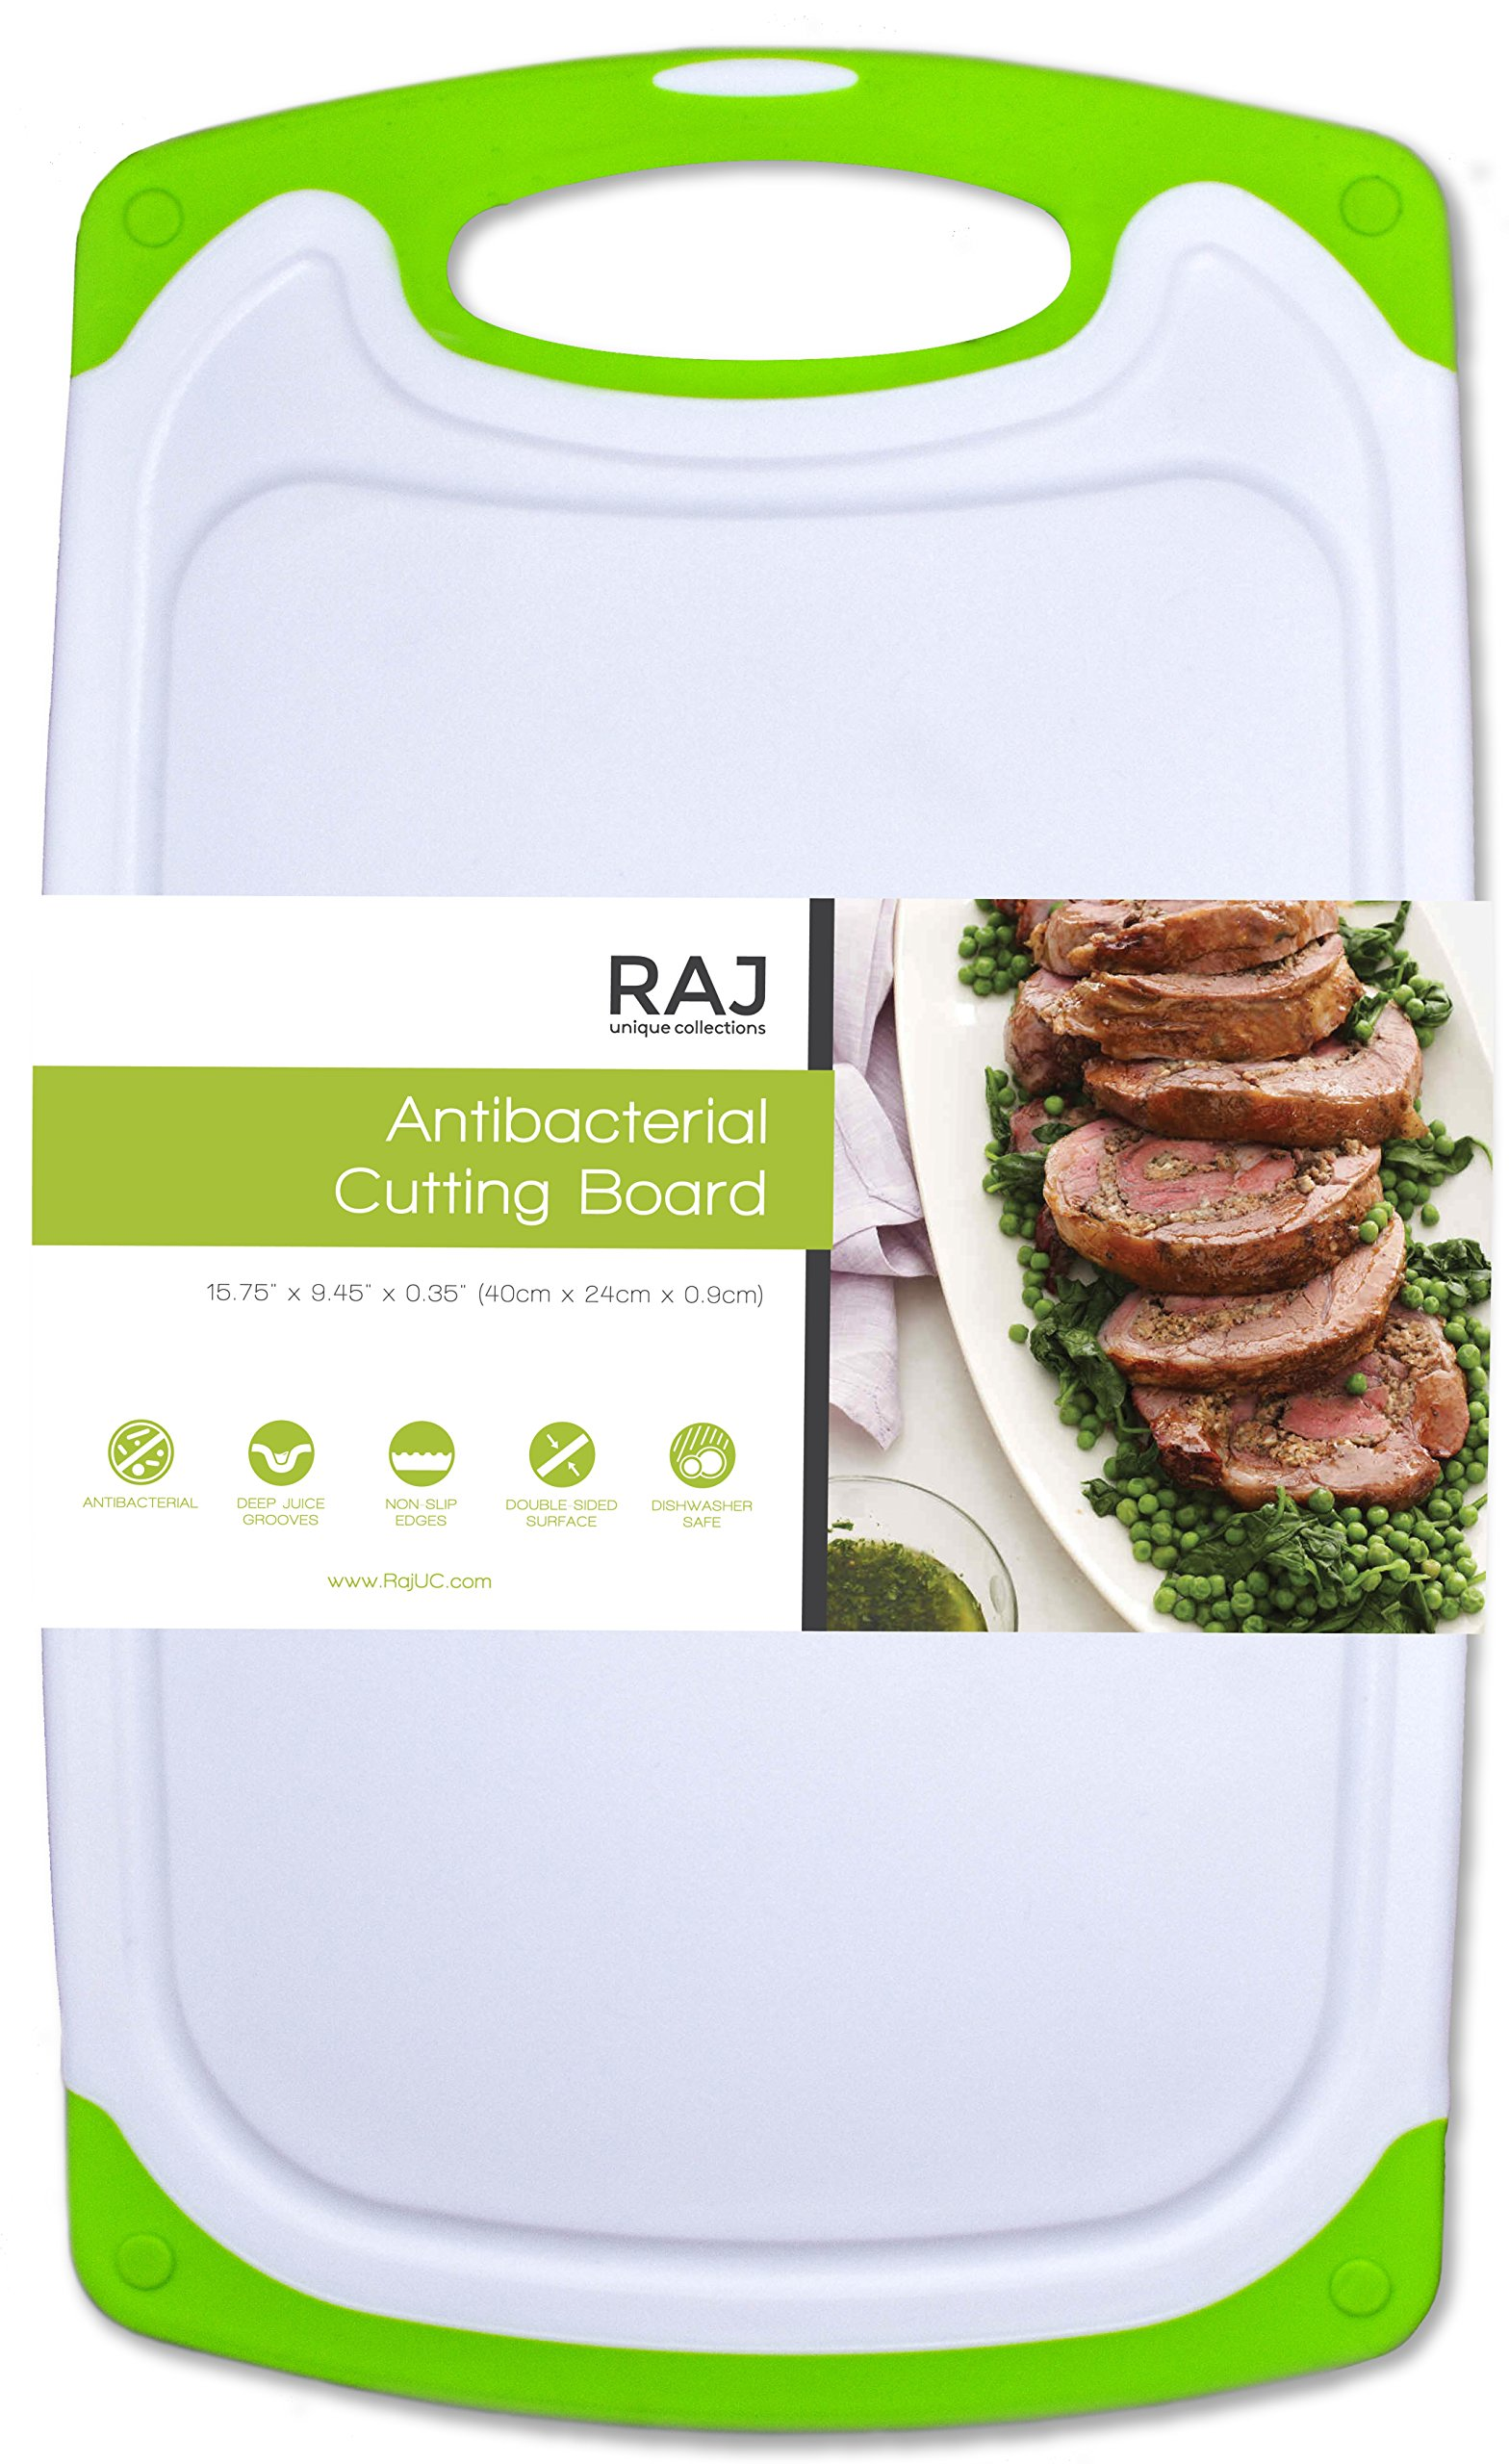 Raj Non-Slip Antibacterial Plastic Cutting Board, Deep Juice Groove, Dishwasher Safe, BPA Free, FDA Approved White and green (1 Piece Large, White board with Green Ends)